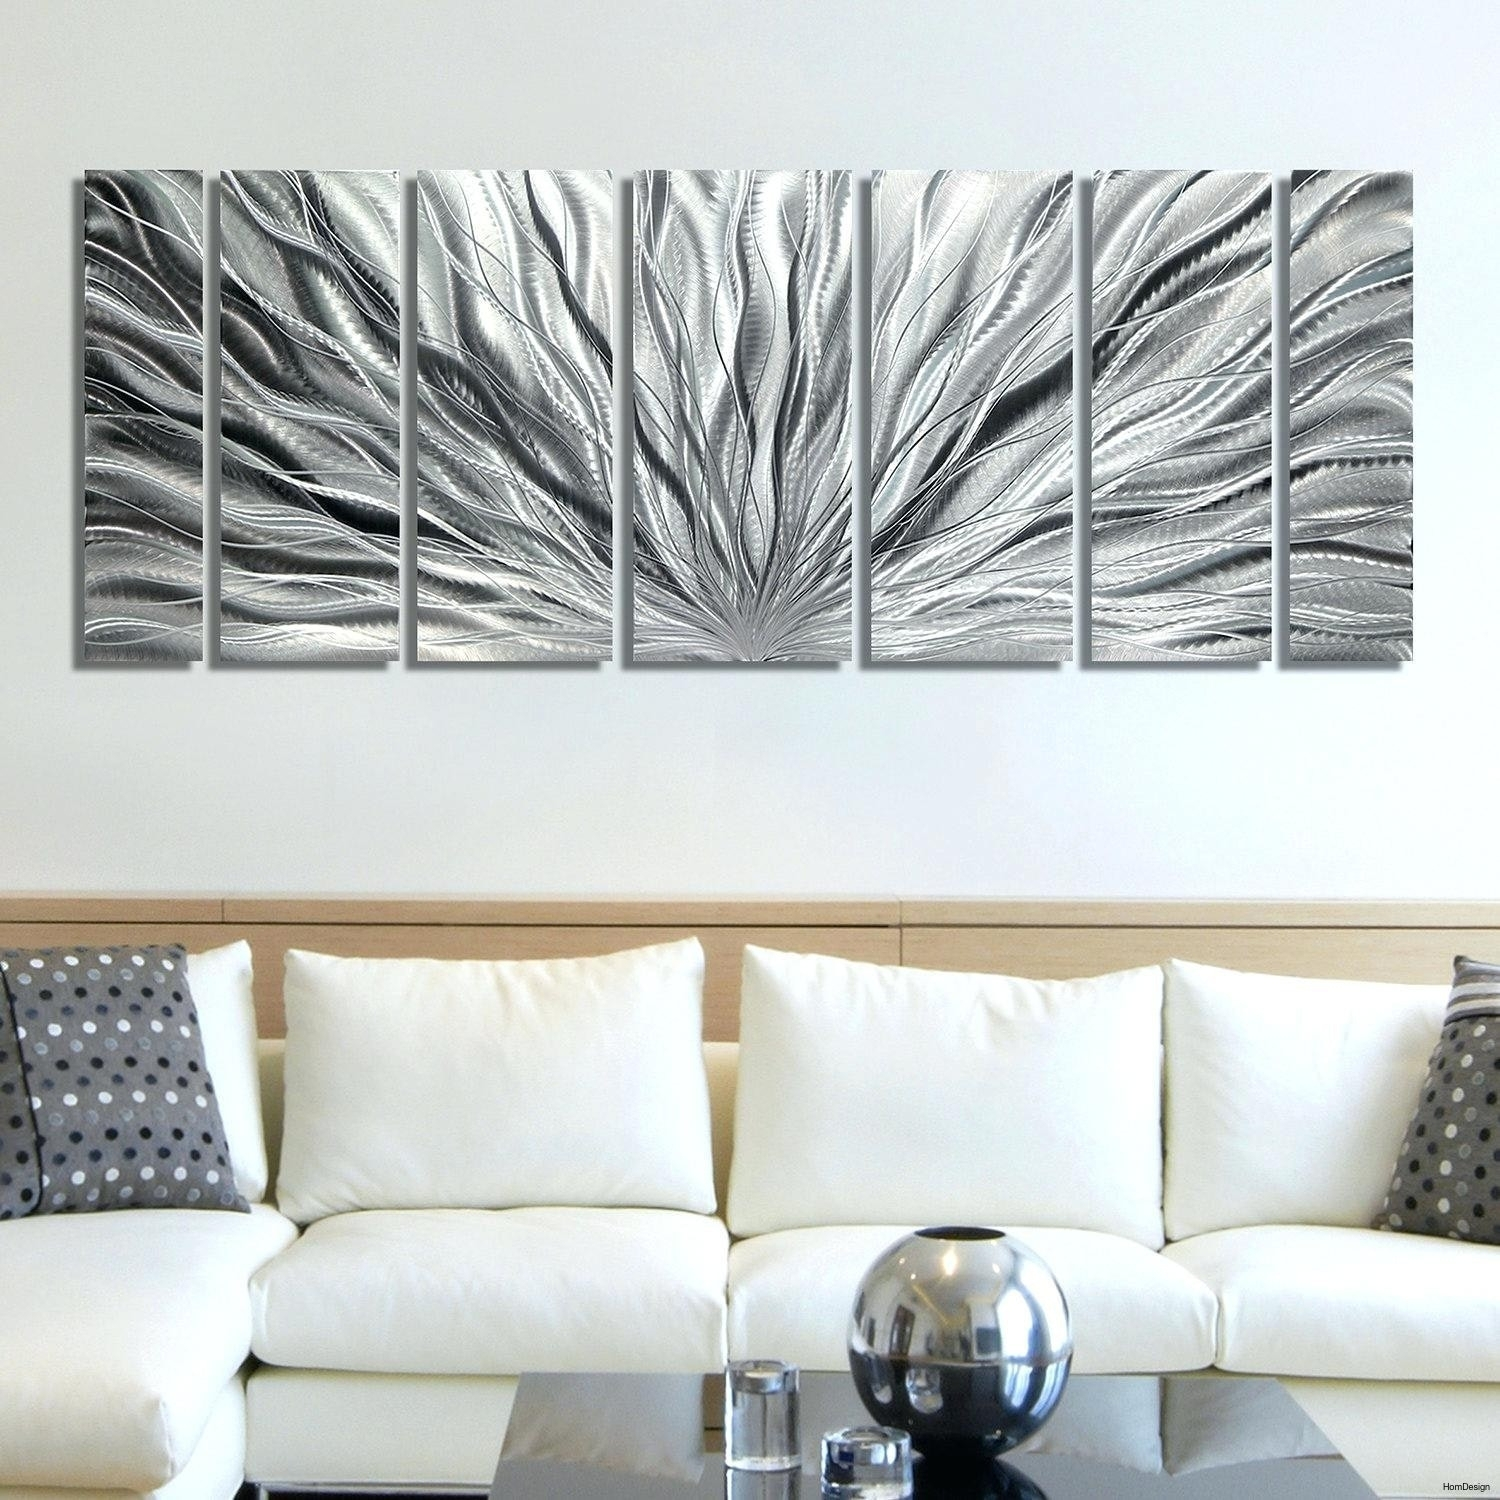 33 Awesome Decorative Wall Art Design Ideas Of Ross Wall Art | Wall Within Most Current Ross Wall Art (View 1 of 20)